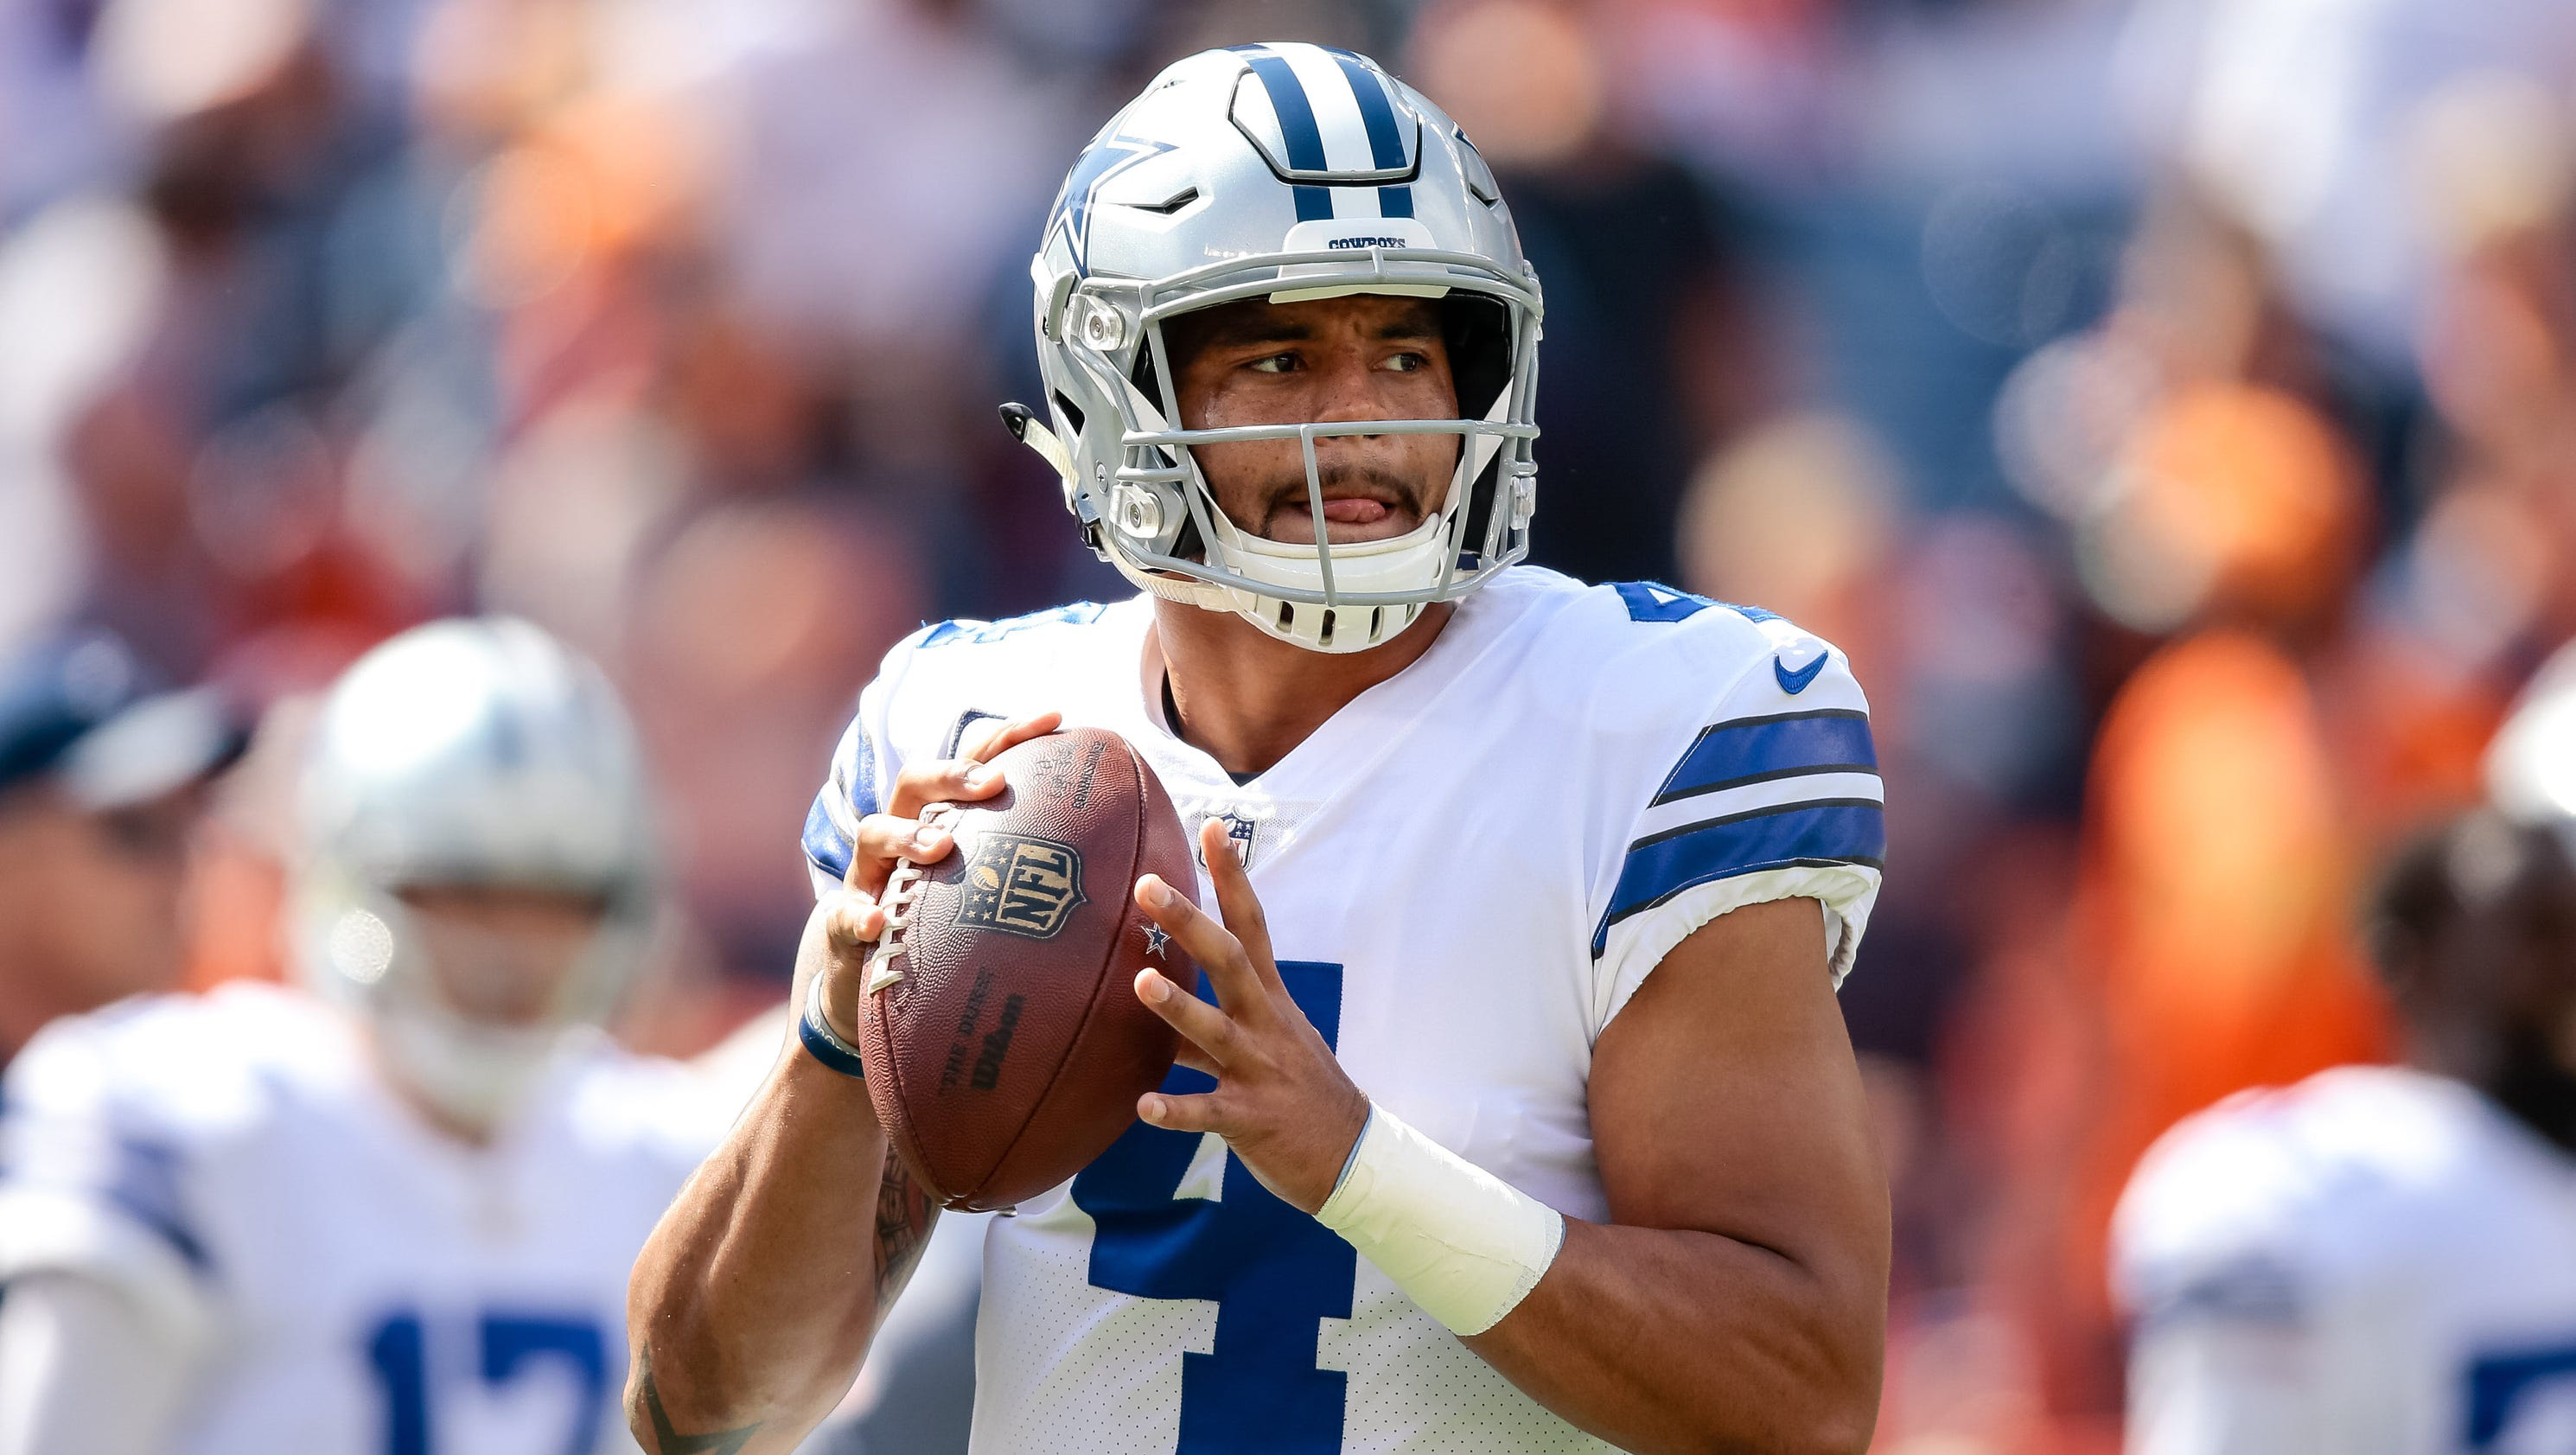 Cowboys Dak Prescott sets record for fewest INTs in first